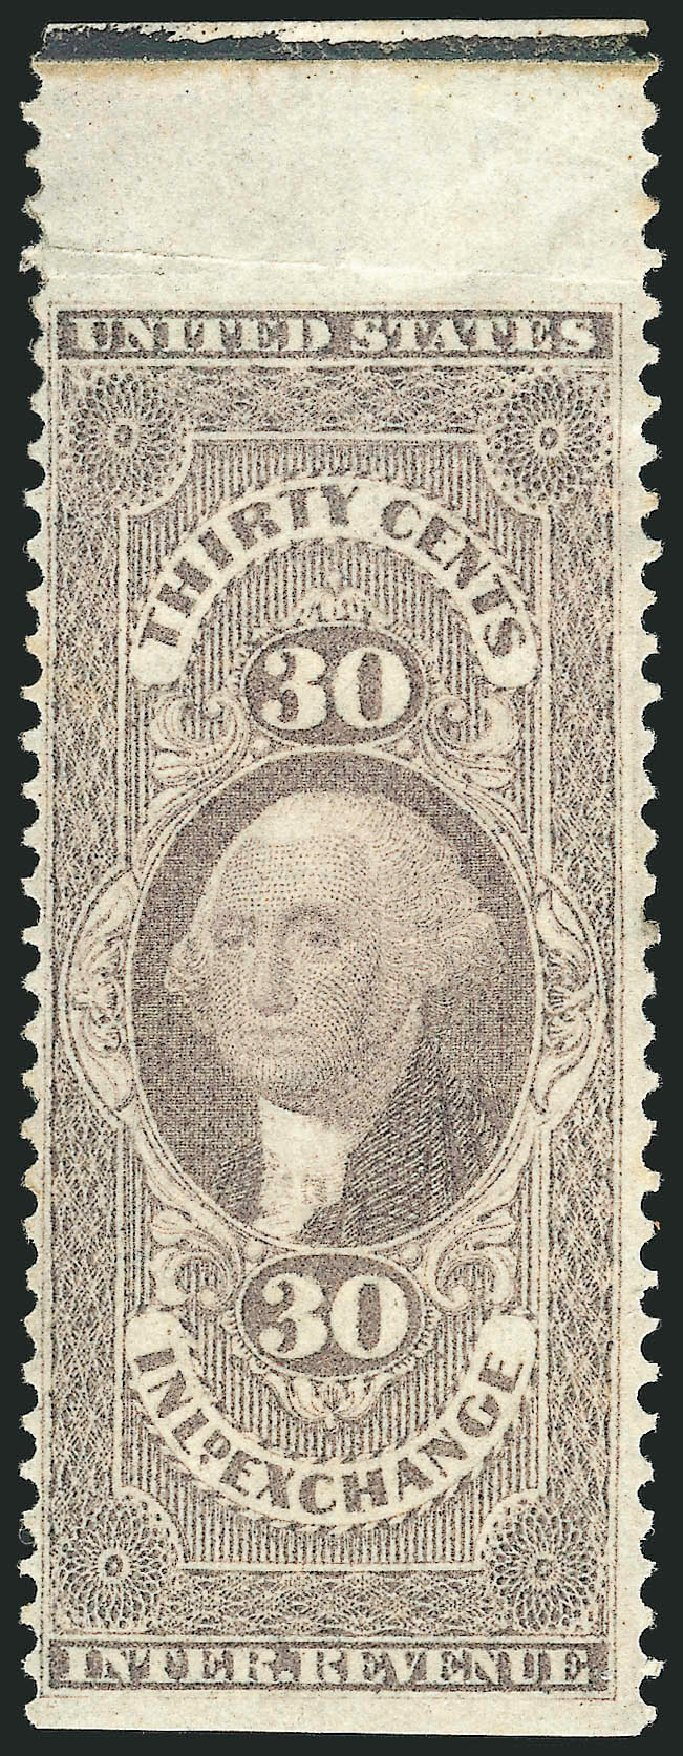 US Stamp Price Scott Catalogue #R52 - 1862 30c Revenue Inland Exchange. Robert Siegel Auction Galleries, Dec 2014, Sale 1089, Lot 297